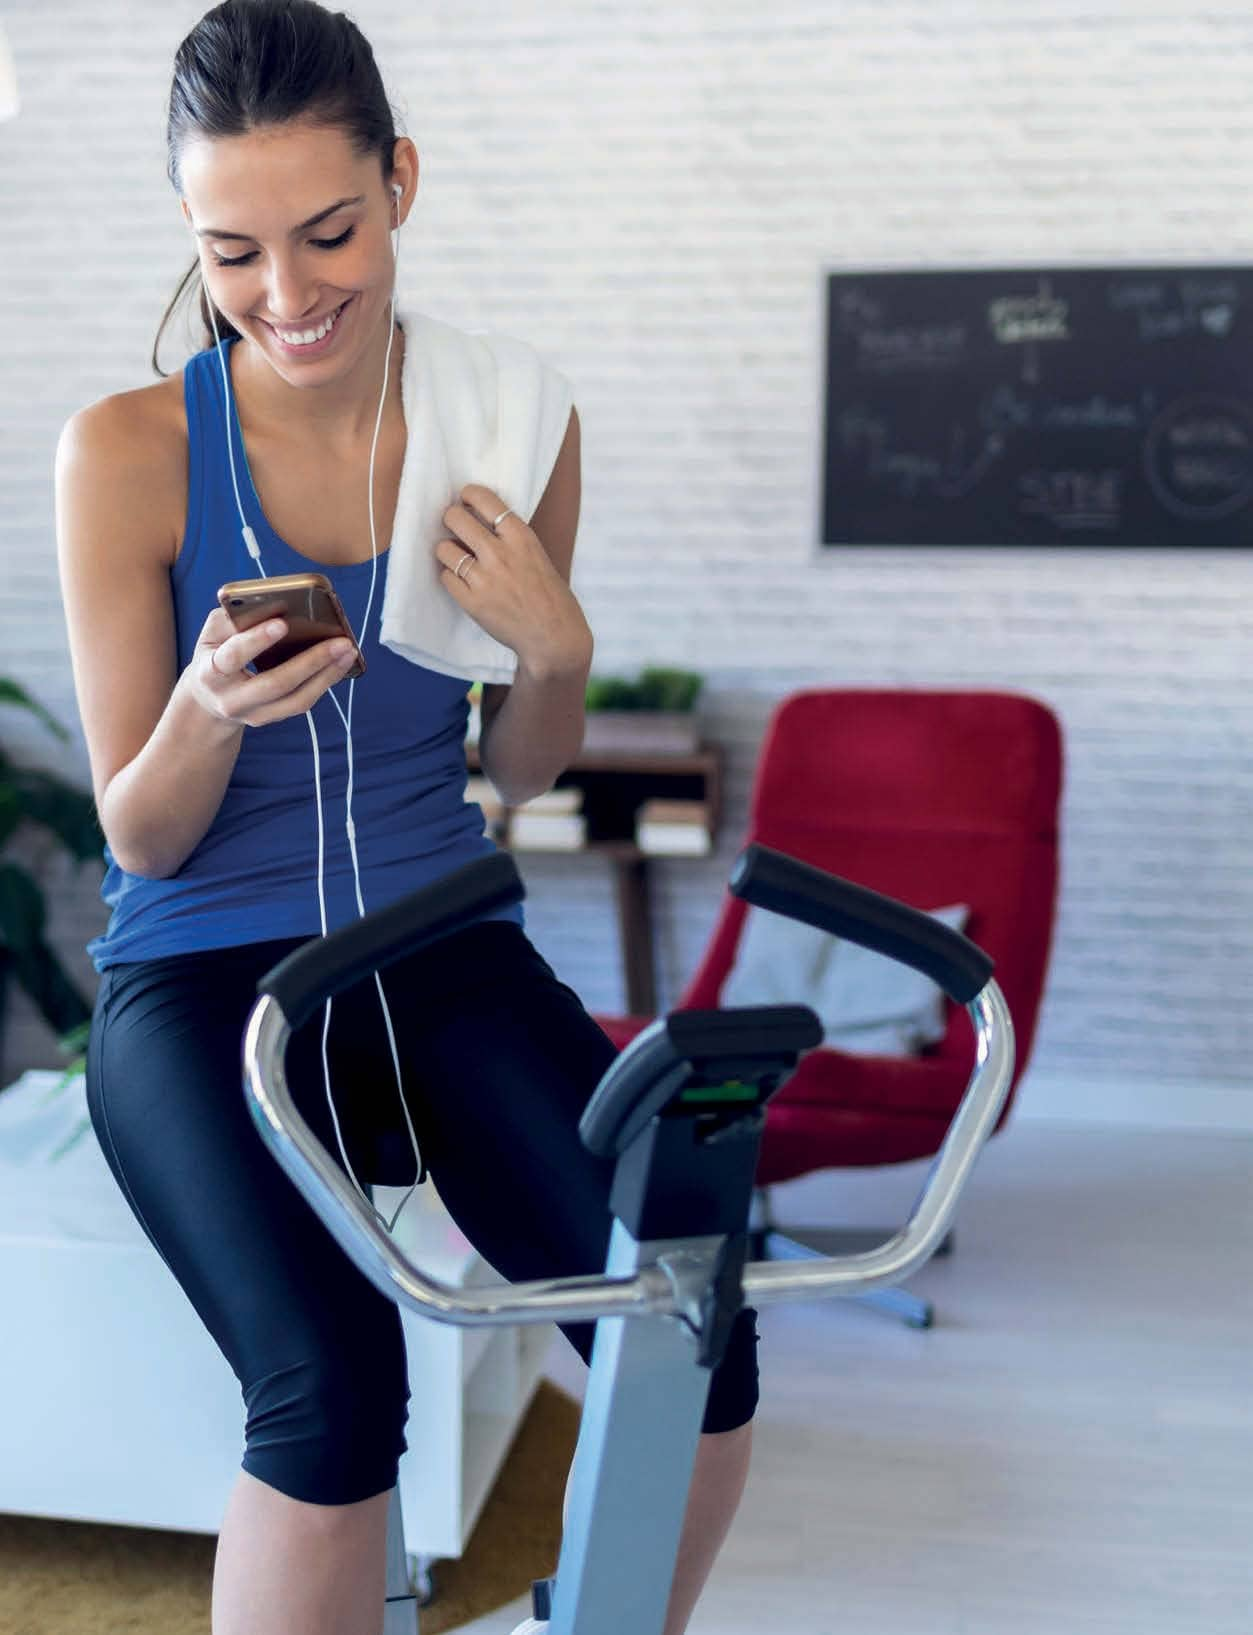 How To Turn Your Home Into A Smart Gym